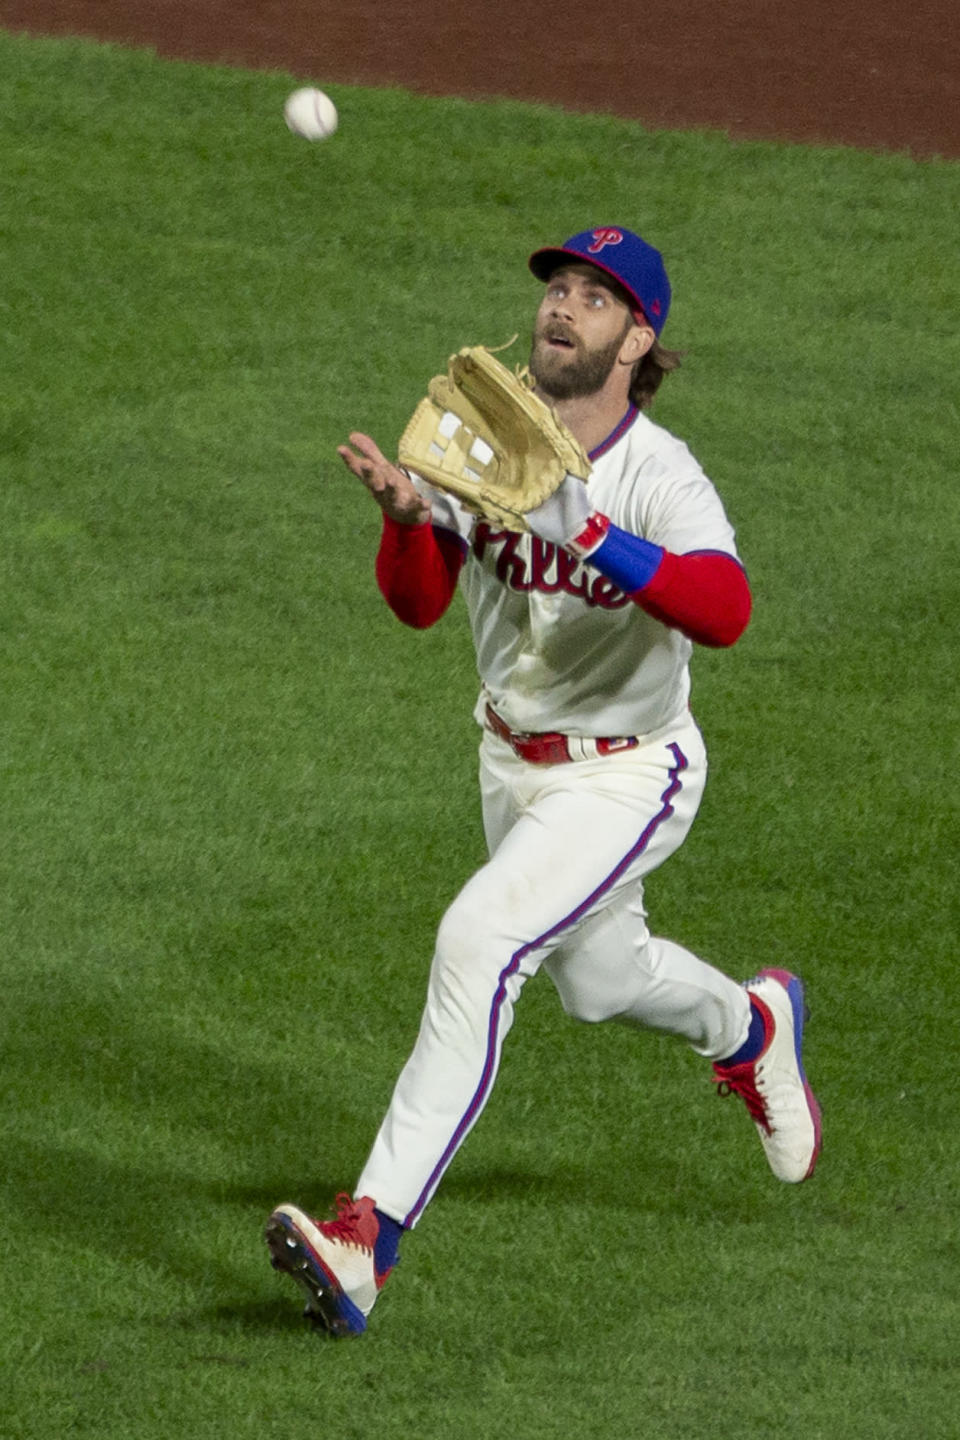 Philadelphia Phillies right fielder Bryce Harper (3) catches a fly during the fourth inning of a baseball game, Saturday, Sept. 19, 2020, in Philadelphia. (AP Photo/Laurence Kesterson)